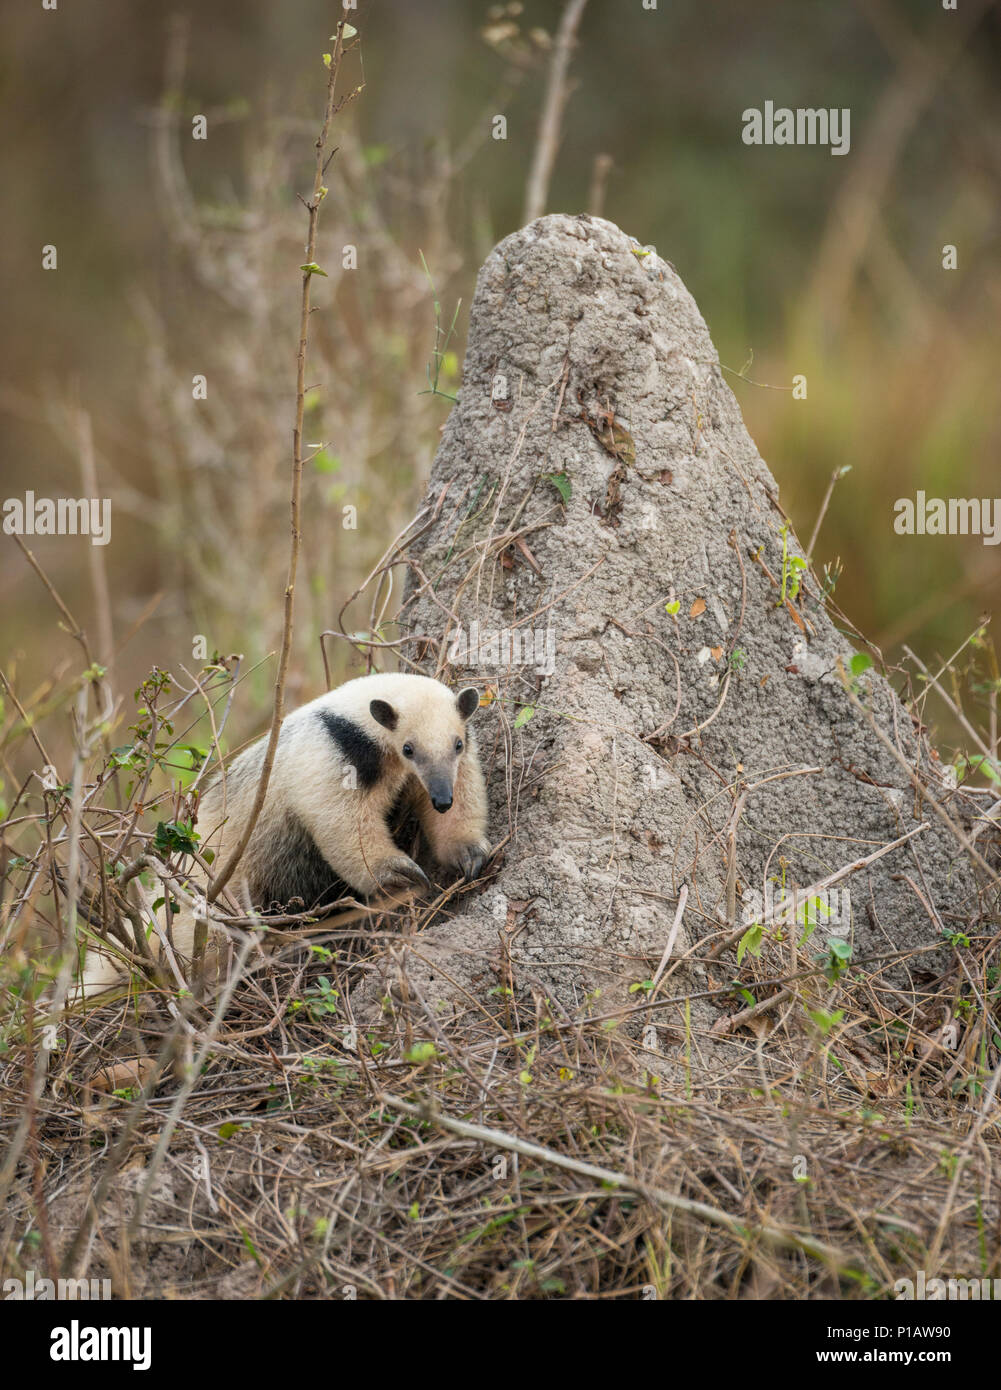 The Southern Tamandua is one of the animals we may find during my photo tours to the Pantanal, Check out details on my profile link. - Stock Image